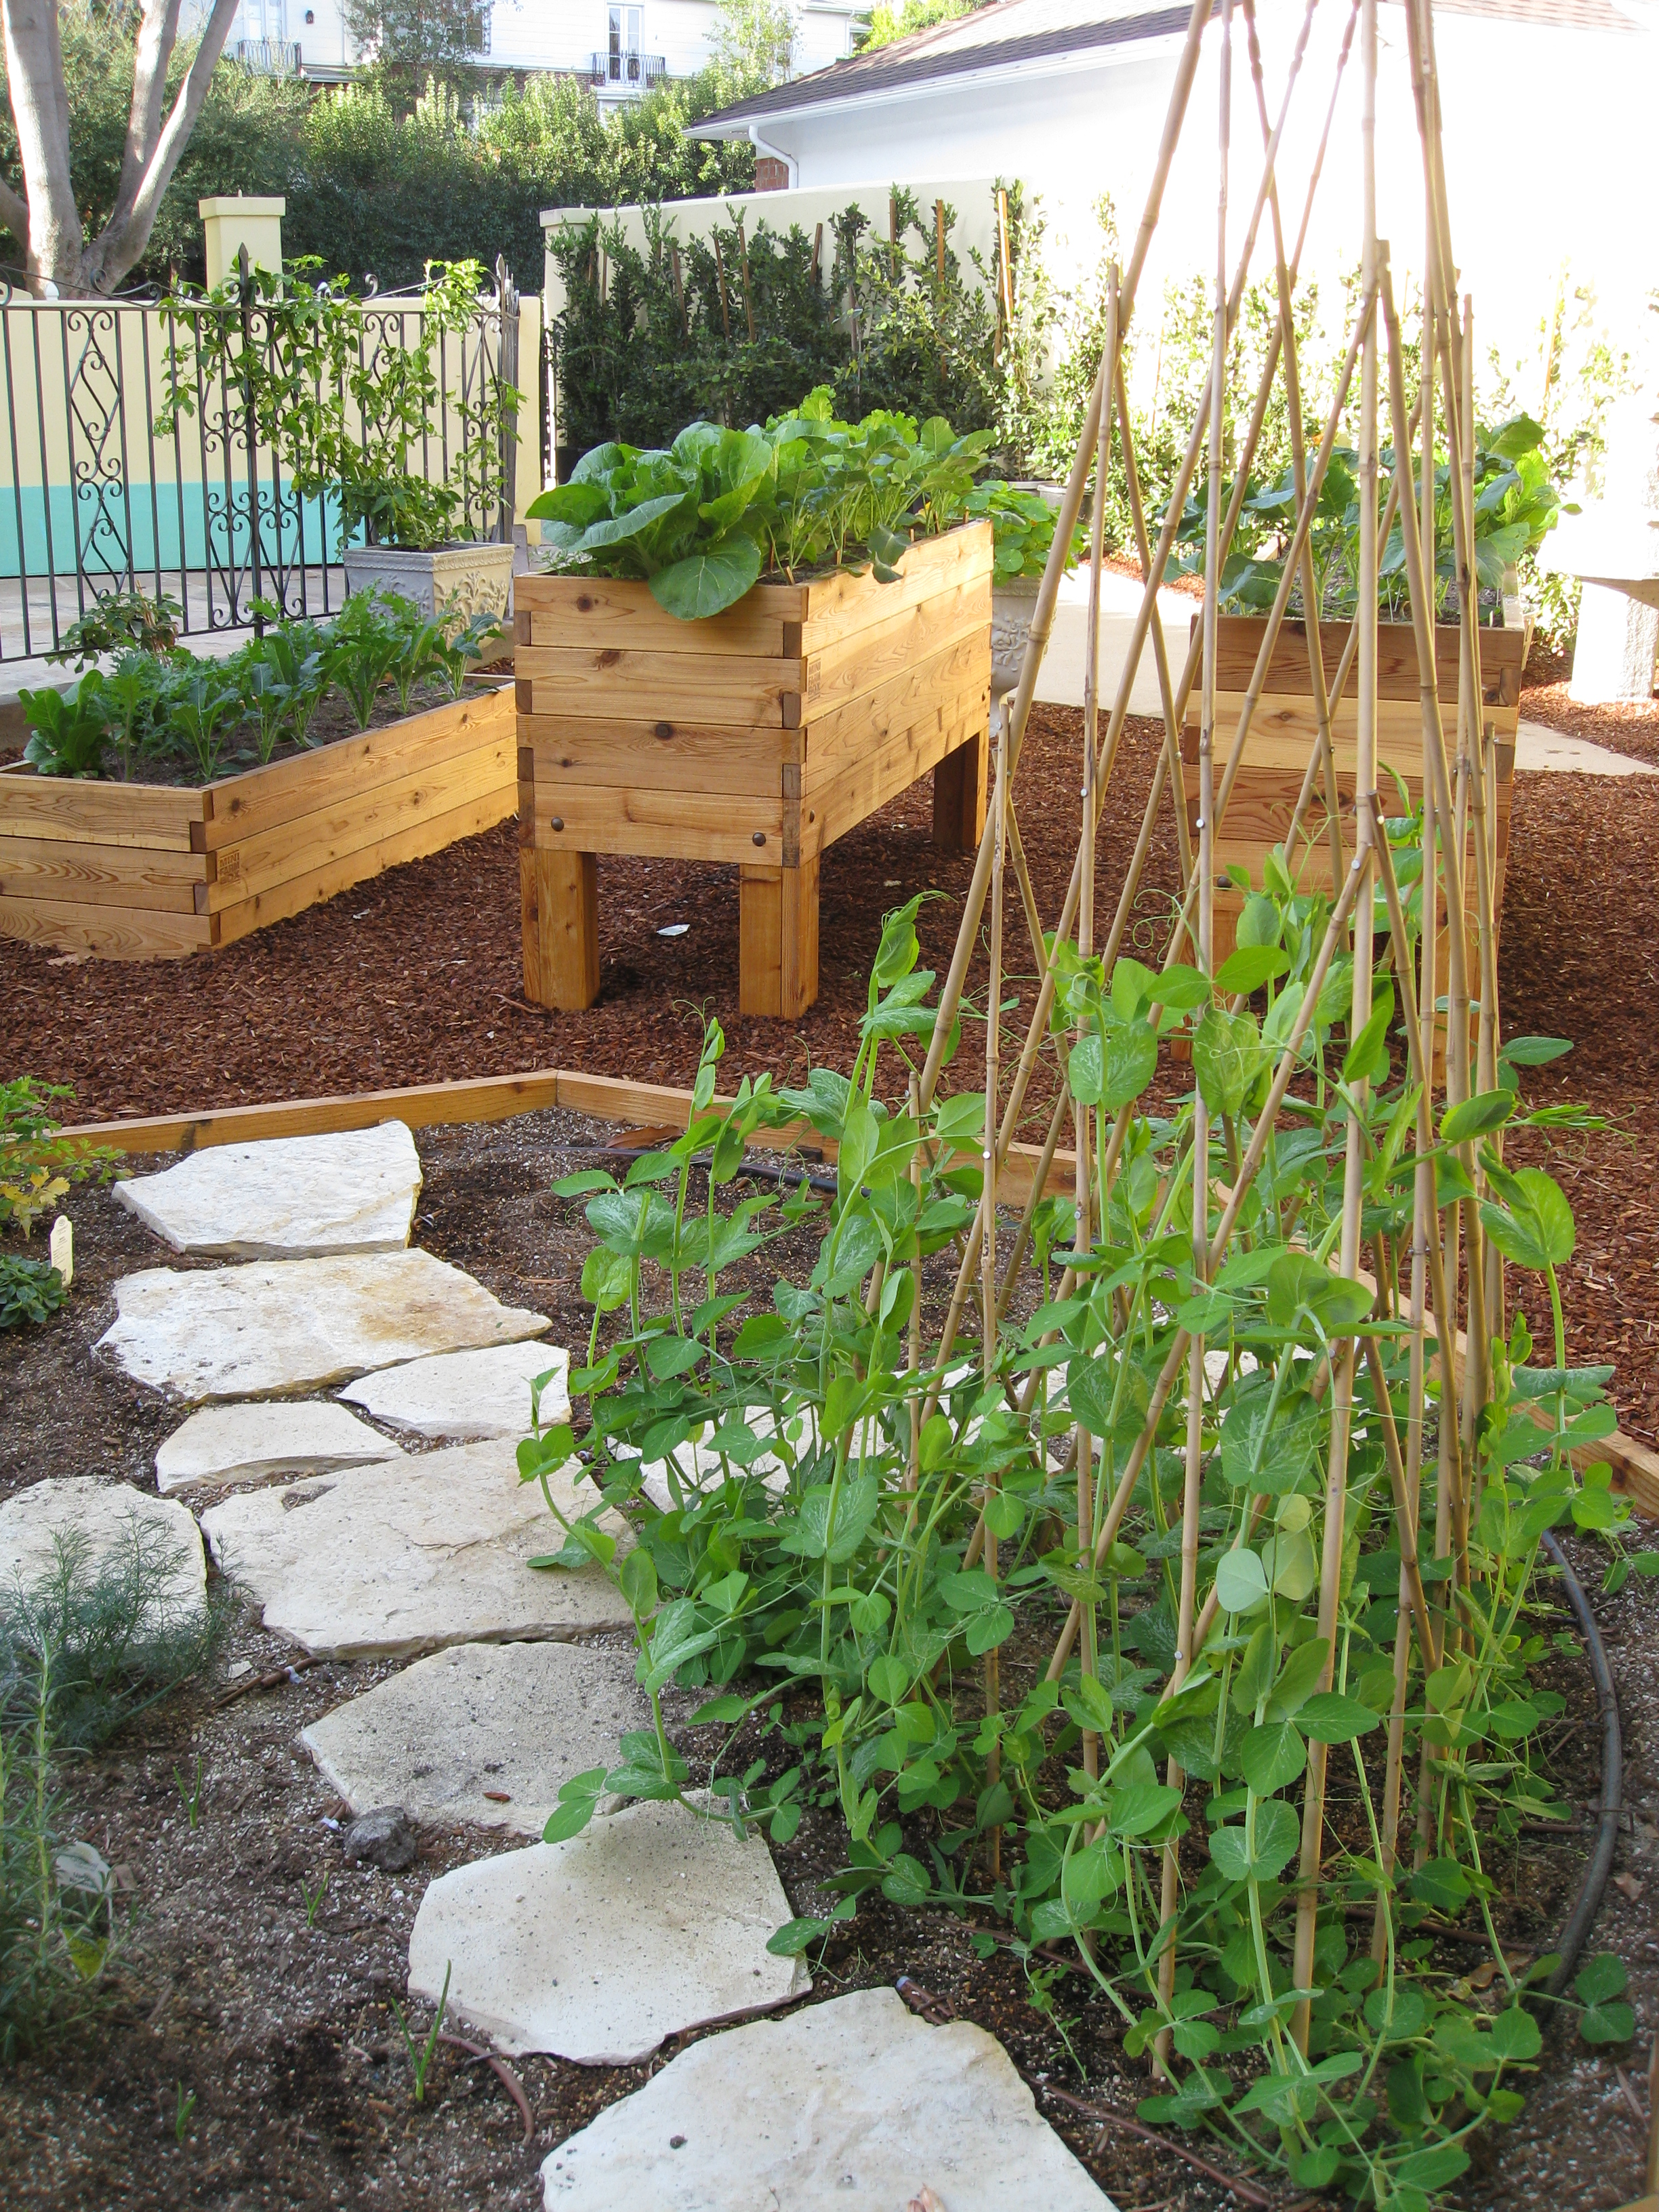 Sugar snap peas, grown from seed, climb a trellis in the community plot.